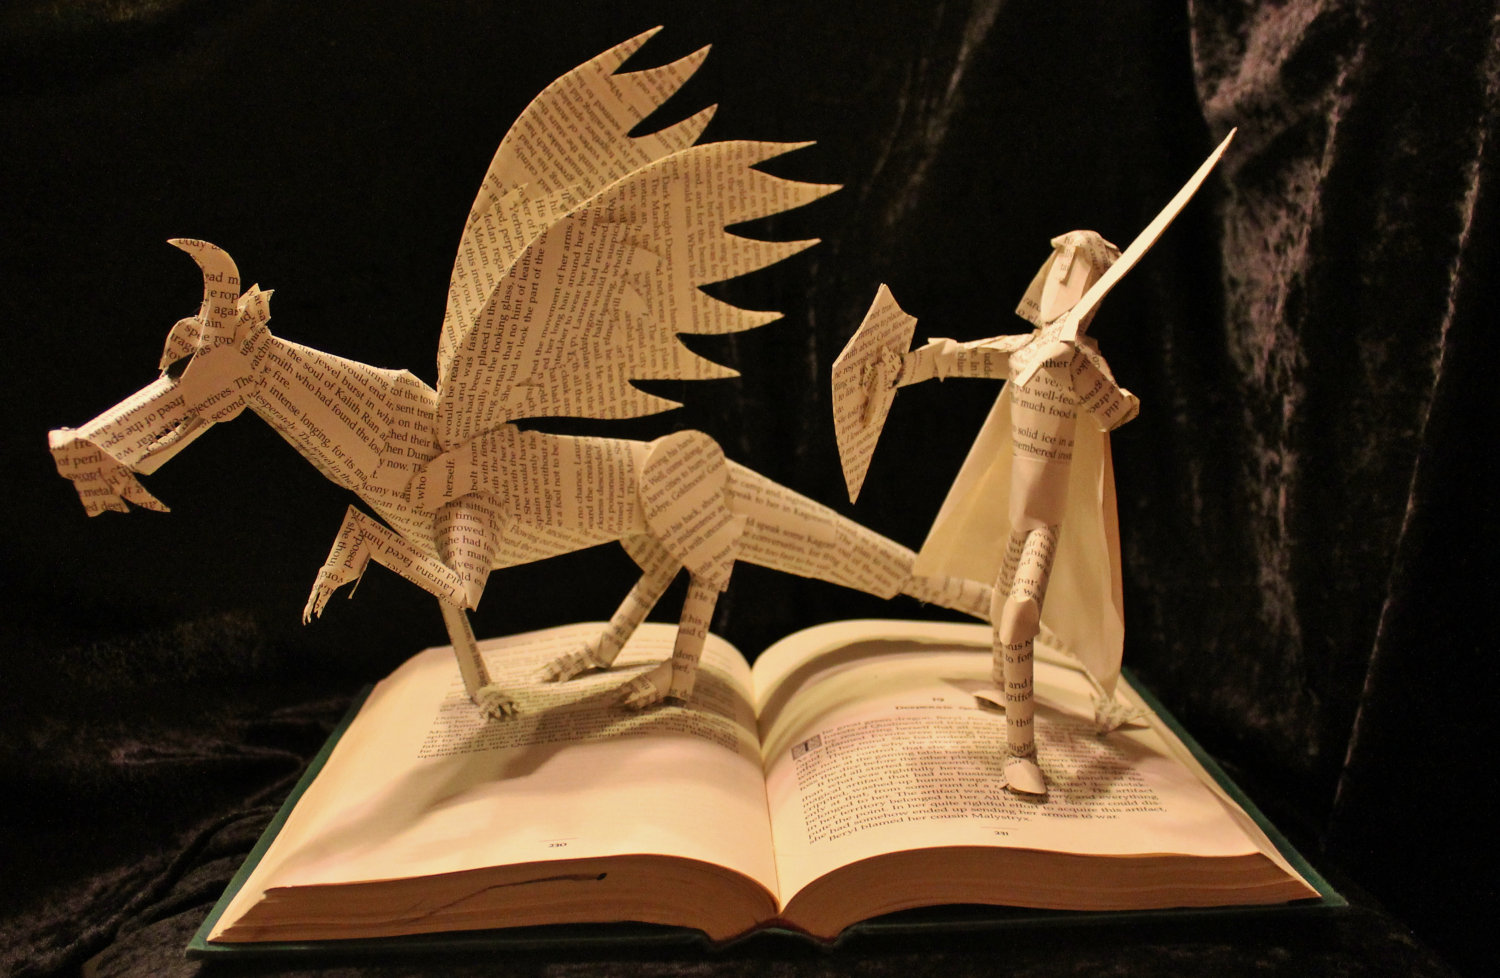 https://thebookshelfgargoyle.files.wordpress.com/2012/09/dragon-and-knight-book-sculpture.jpg